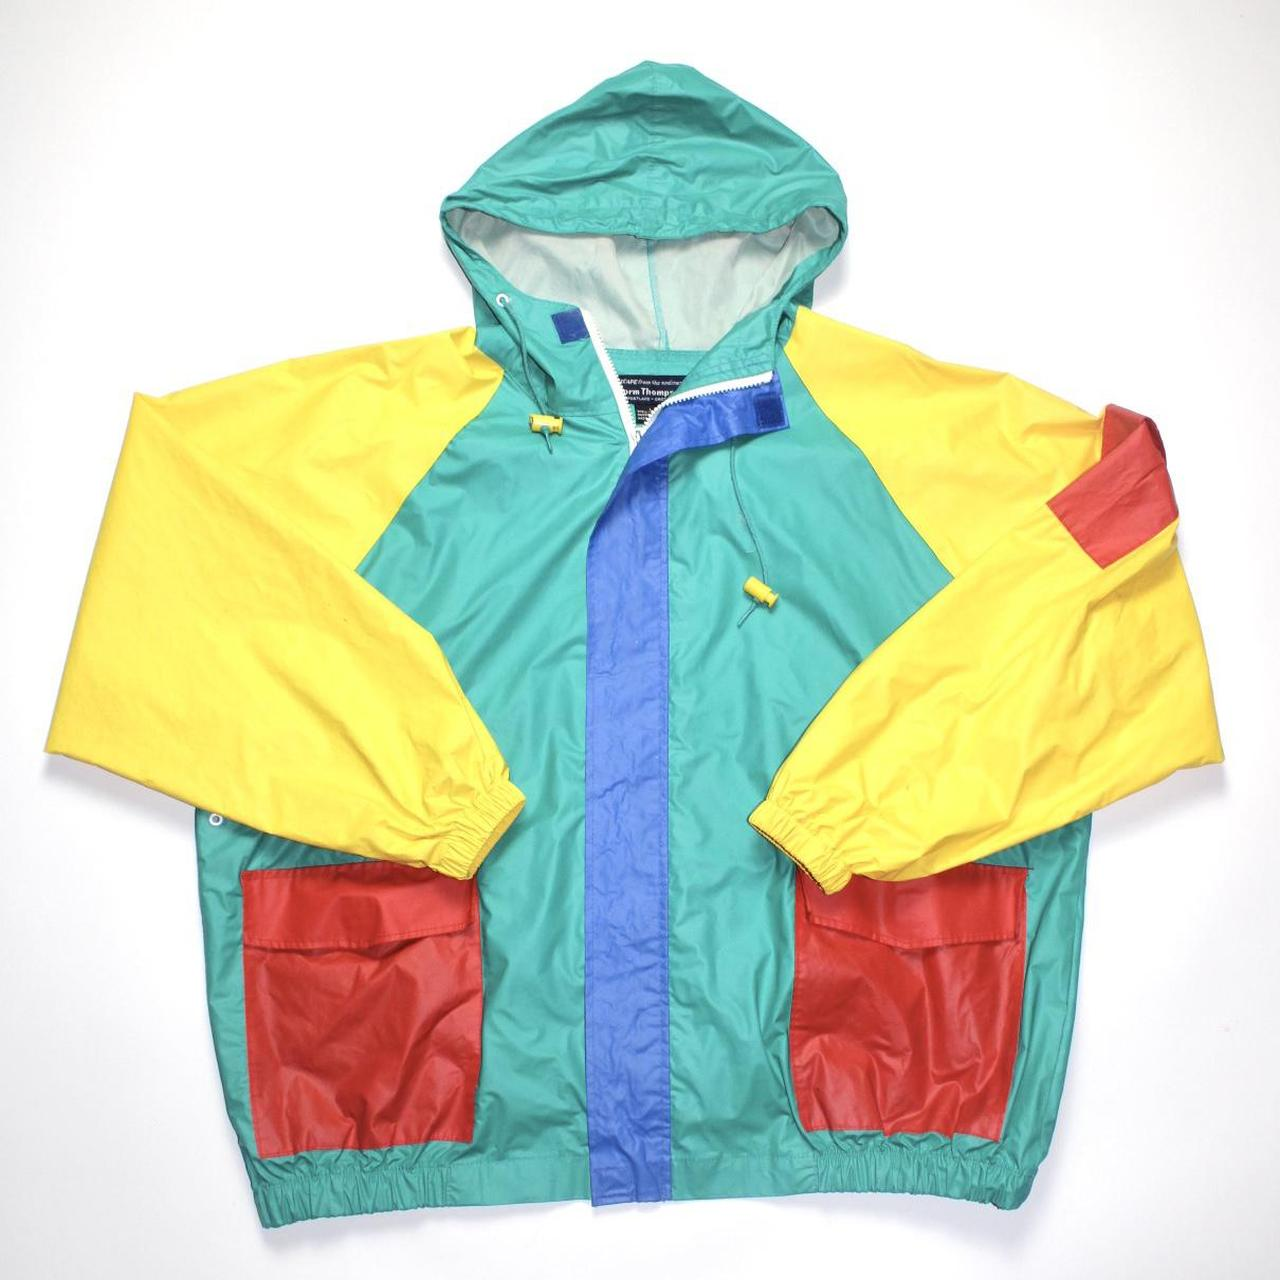 Product Image 1 - Vintage Norm Thompson Multi-Colored Raincoat  Great